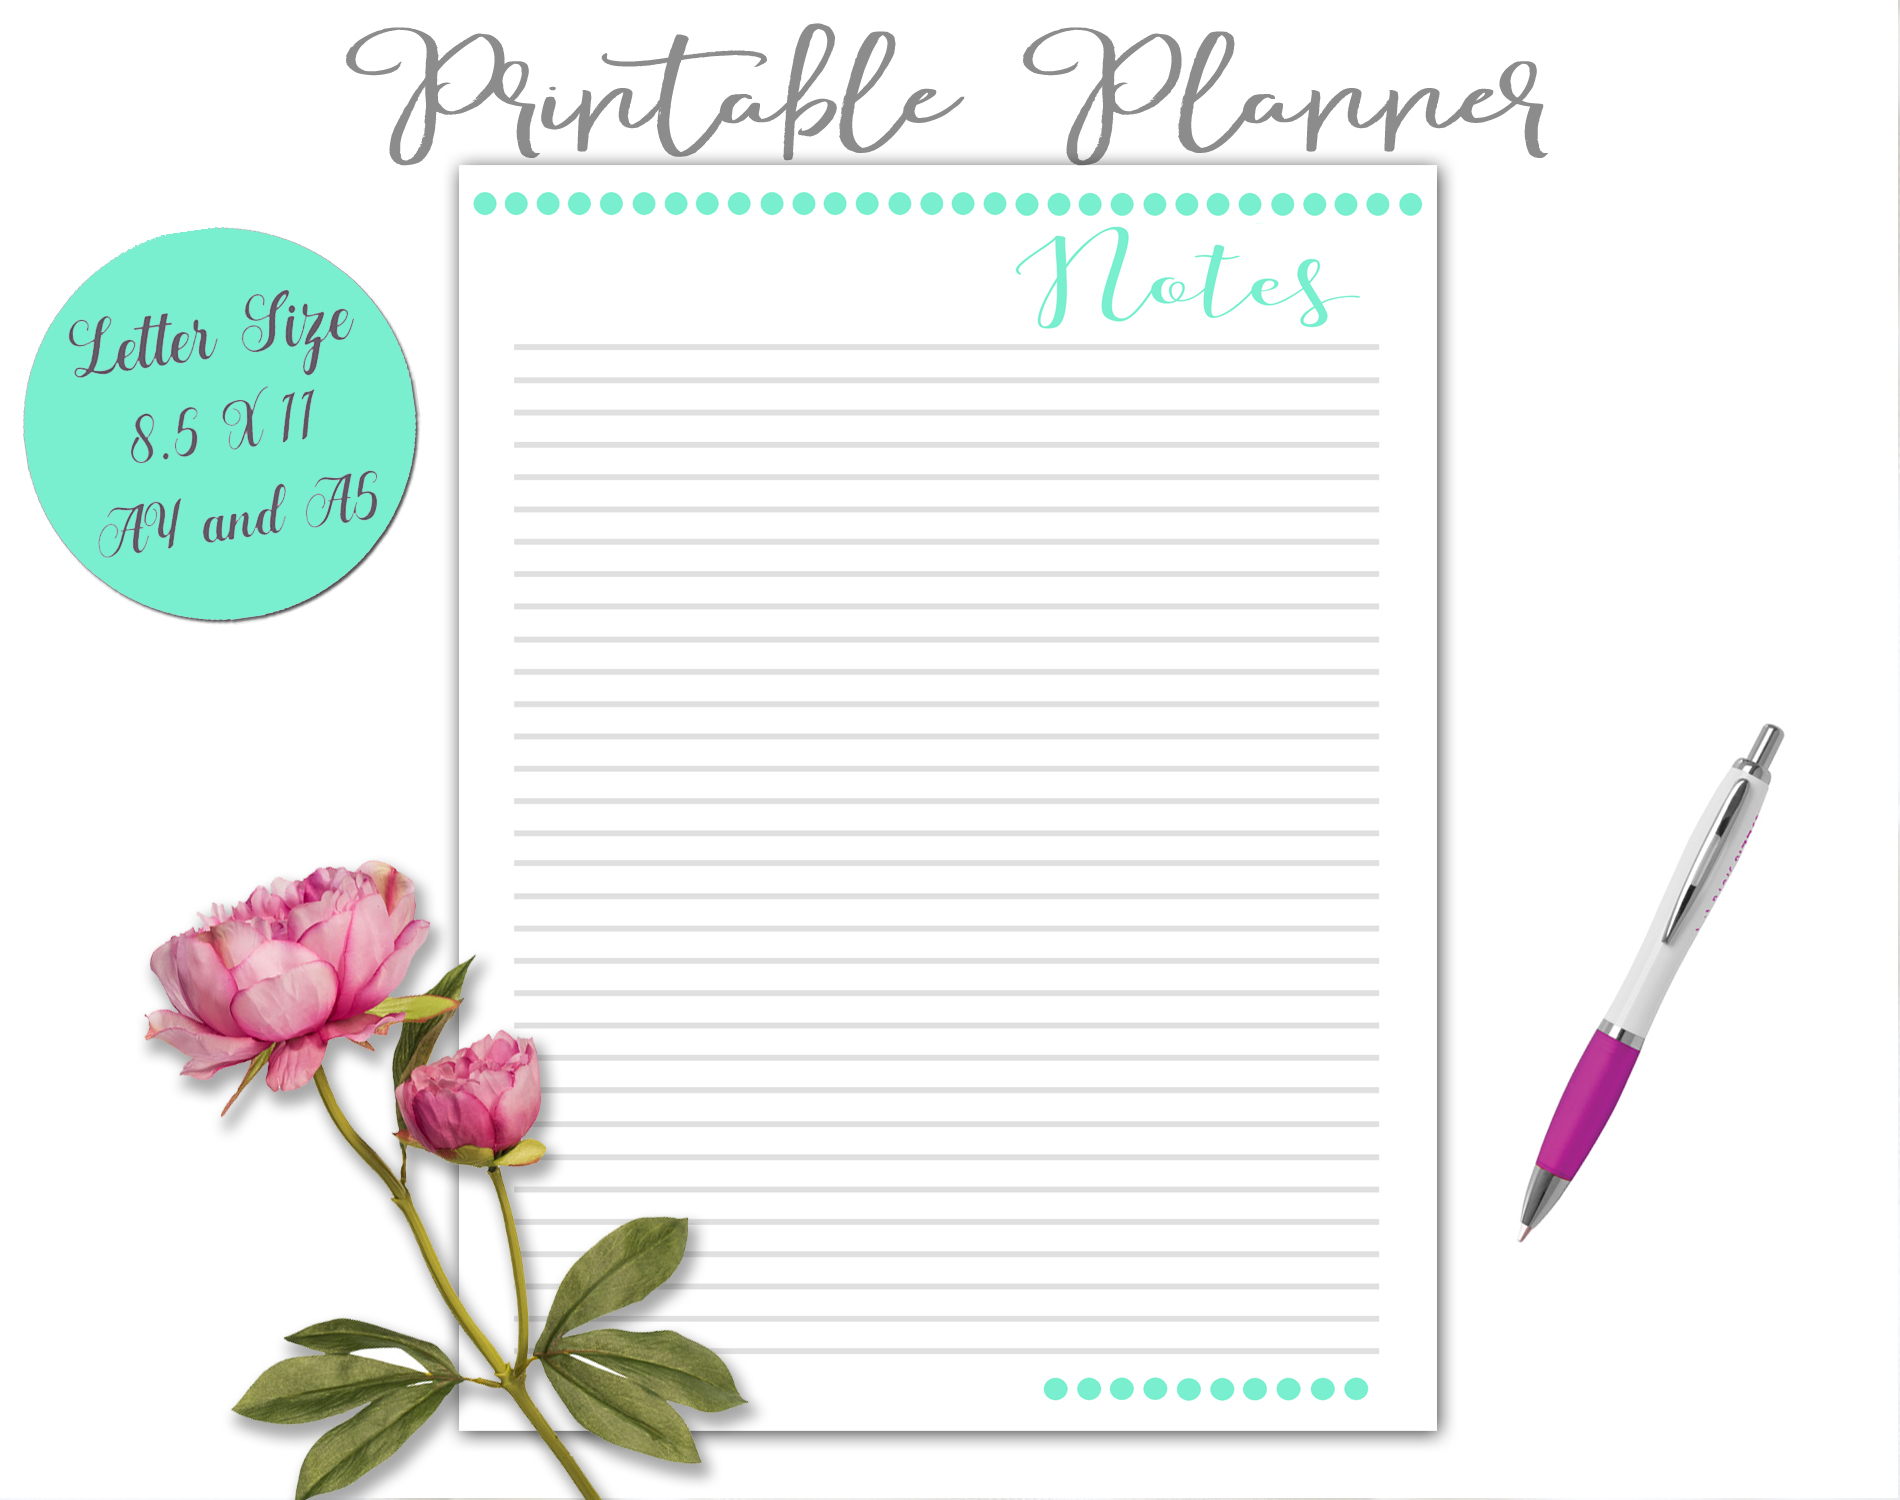 Printable Daily Weekly Monthly Planner Sheets example image 10